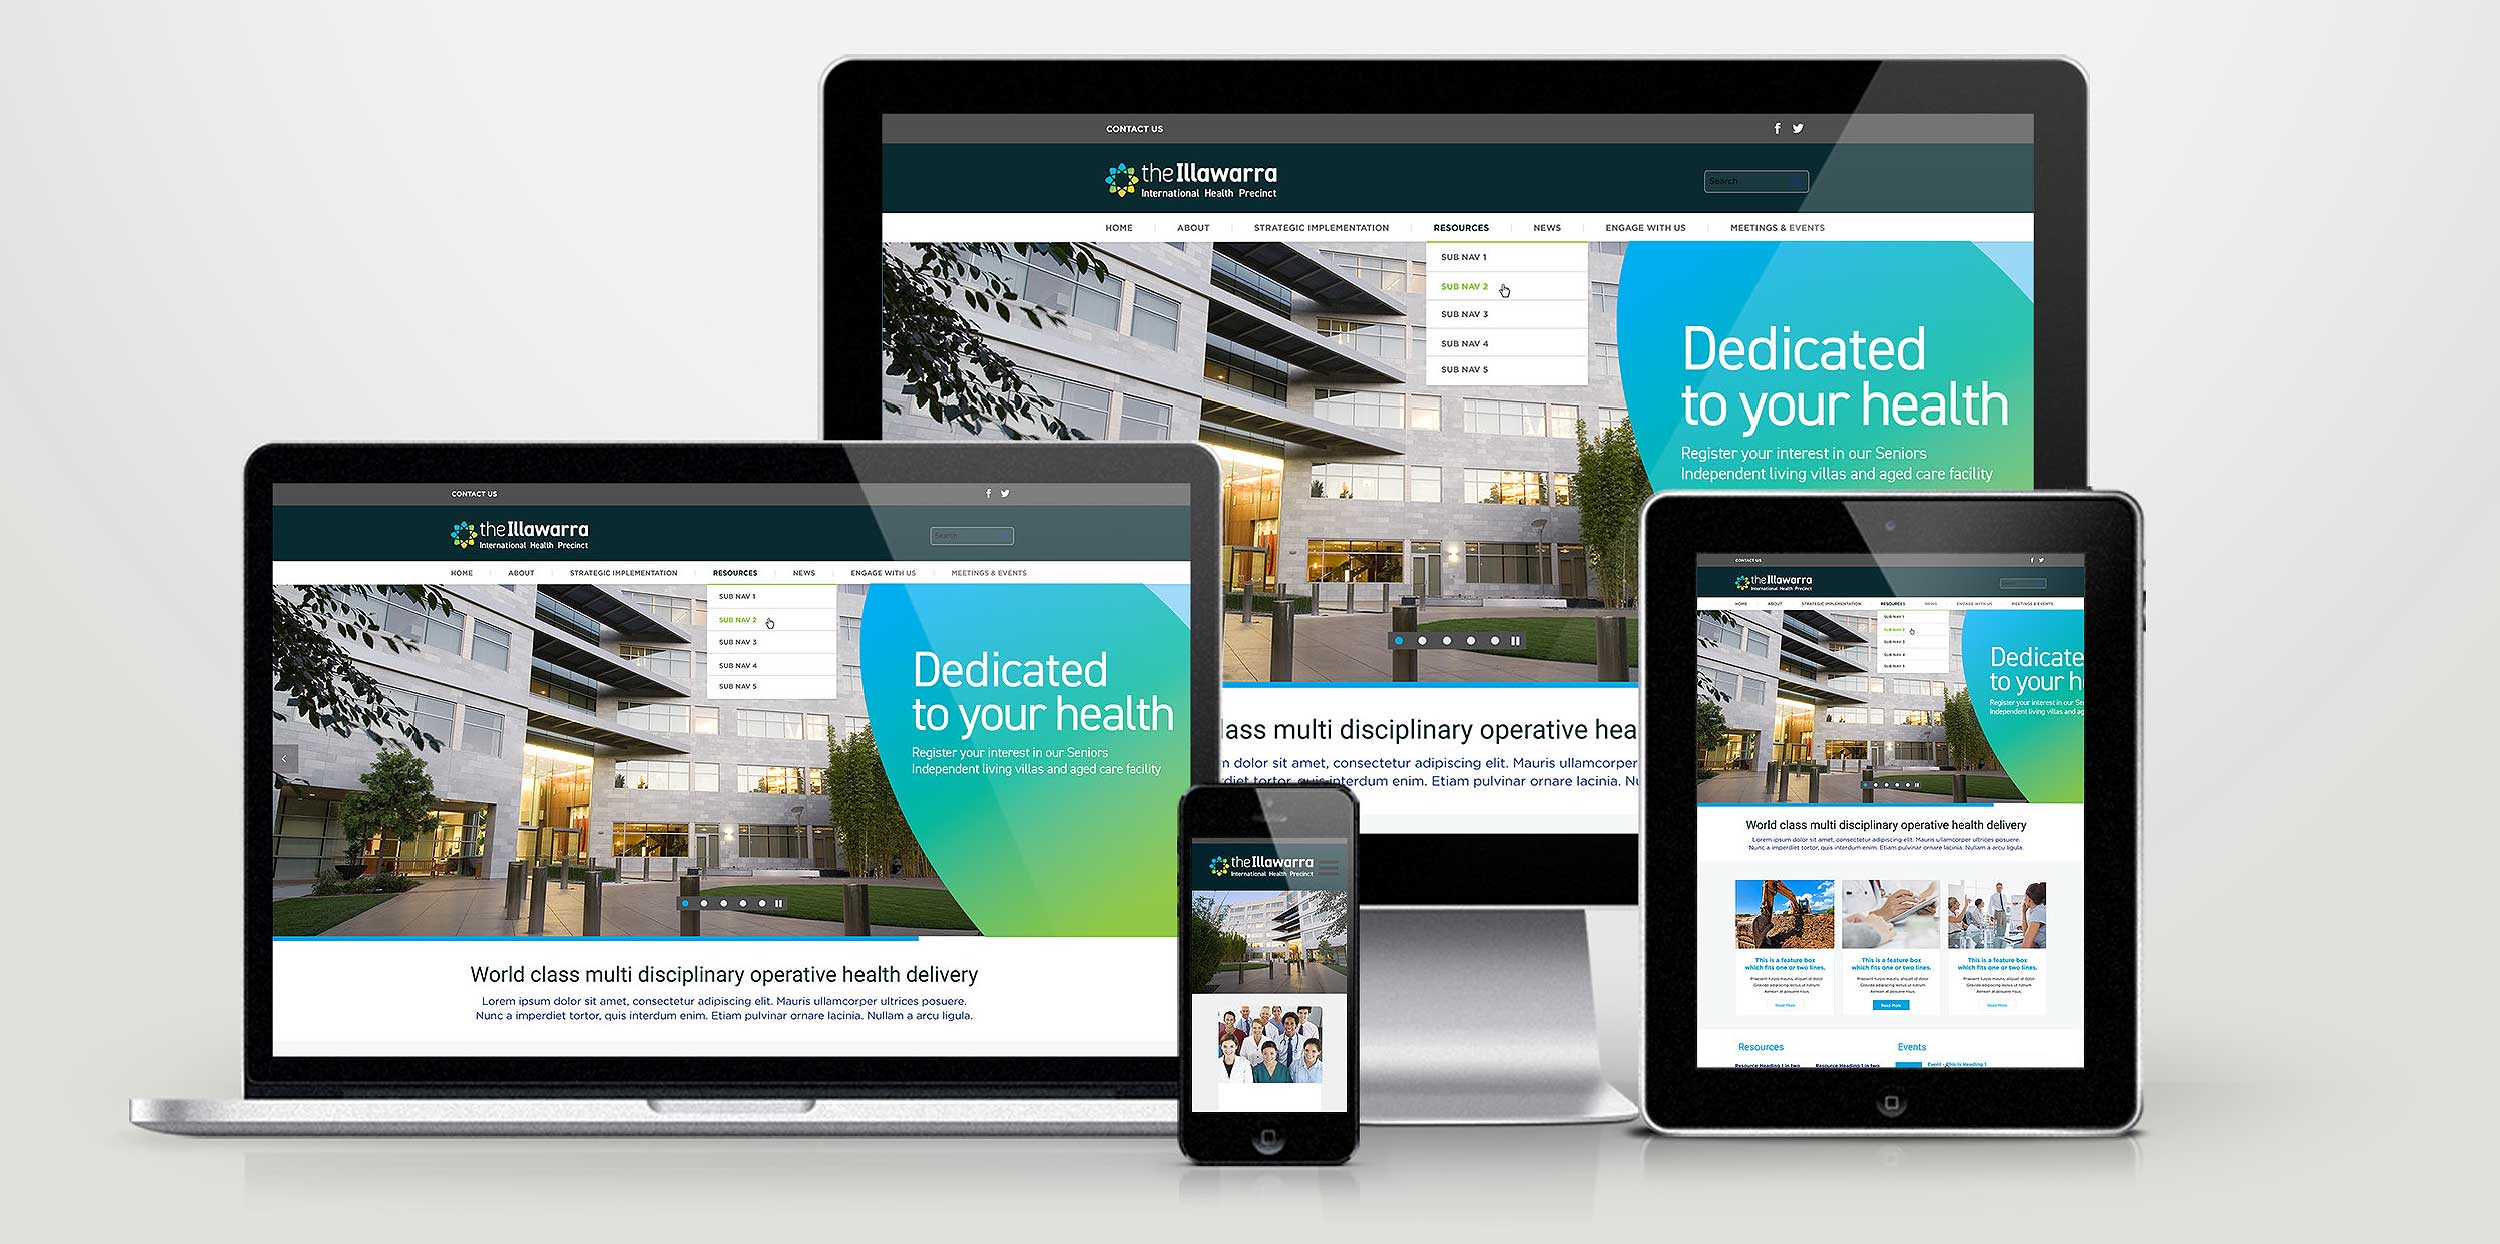 Illawarra-International-Health-Precinct-Hospital-Branding-Handle-Sydney-Branding_14.jpg